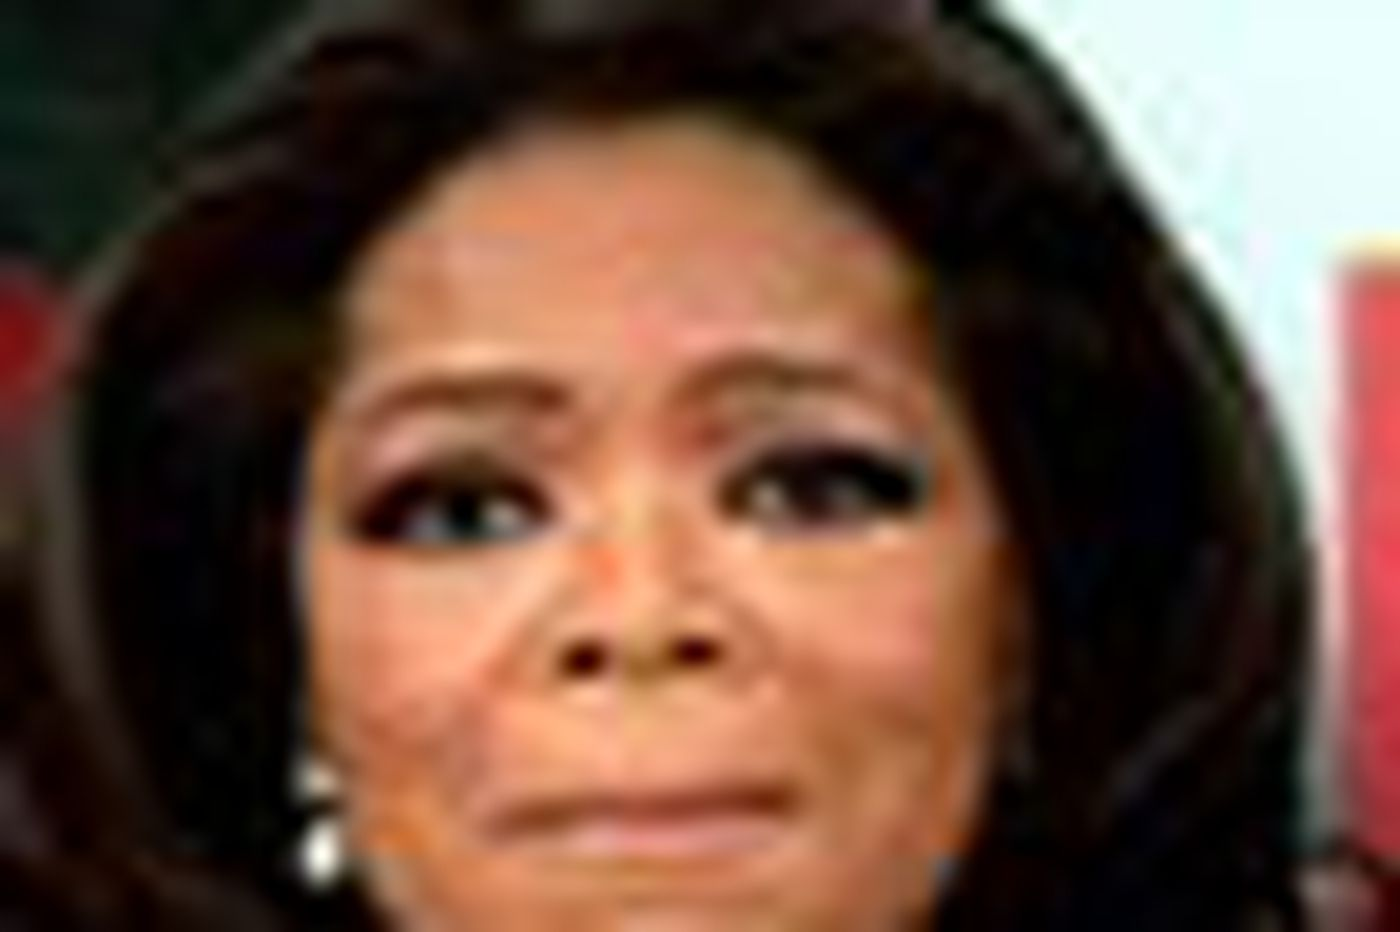 Defamation suit against Oprah Winfrey to proceed